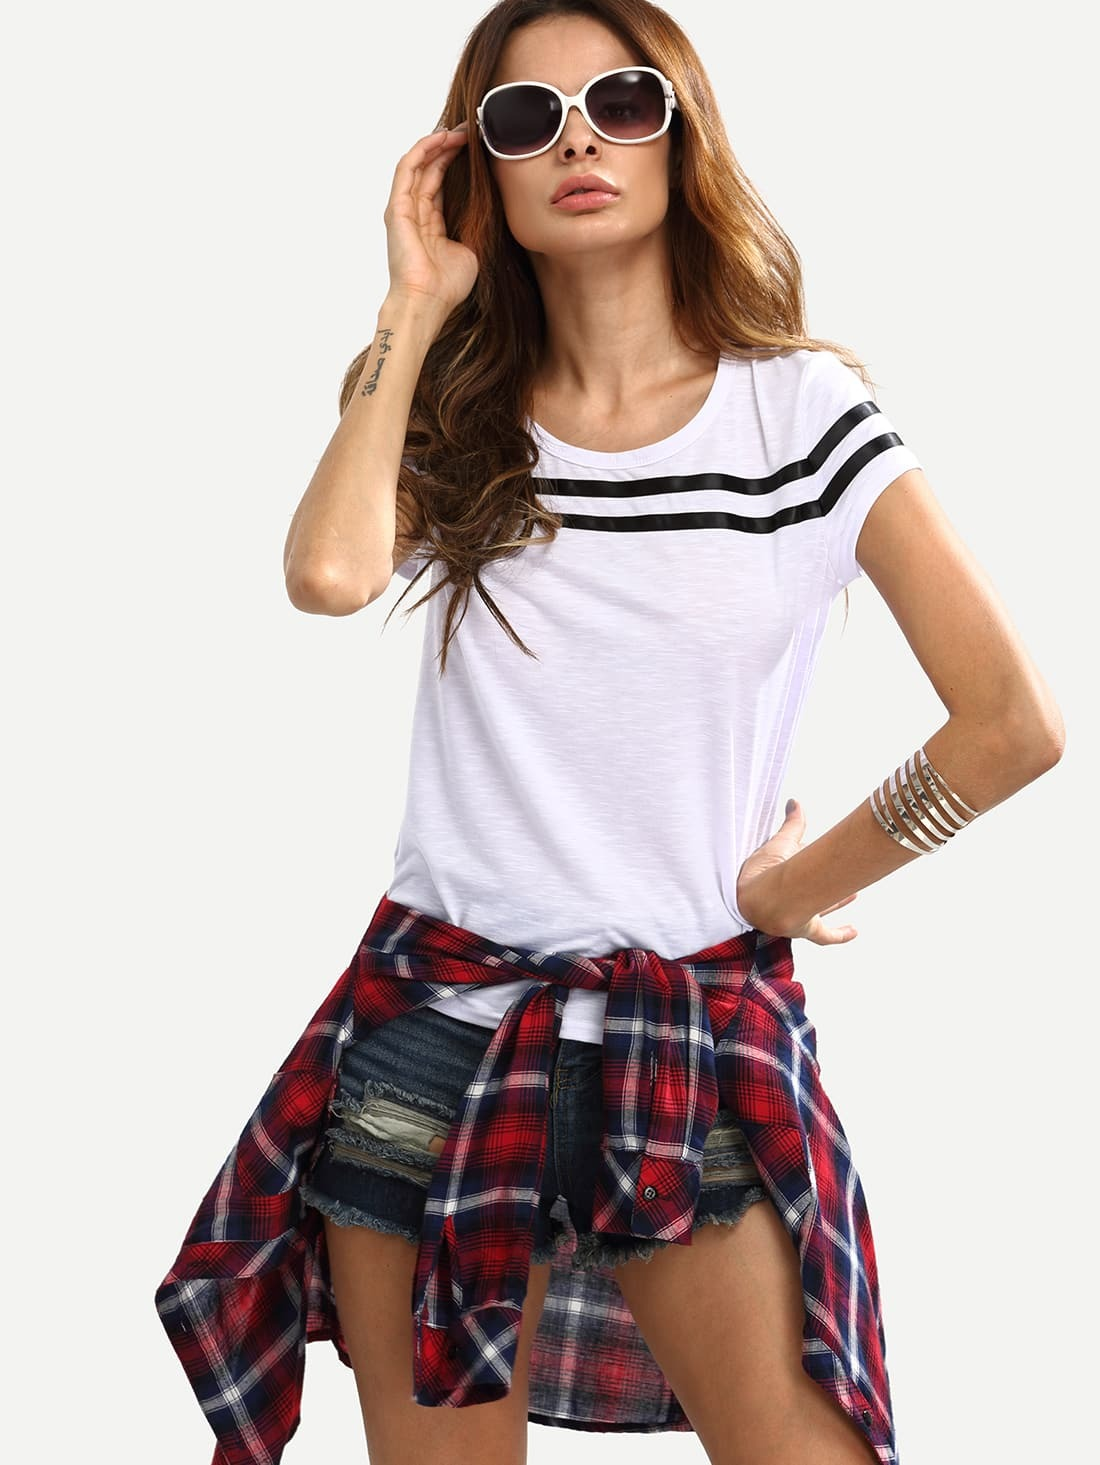 White Cap Sleeve Striped T-shirtWhite Cap Sleeve Striped T-shirt<br><br>color: White<br>size: L,M